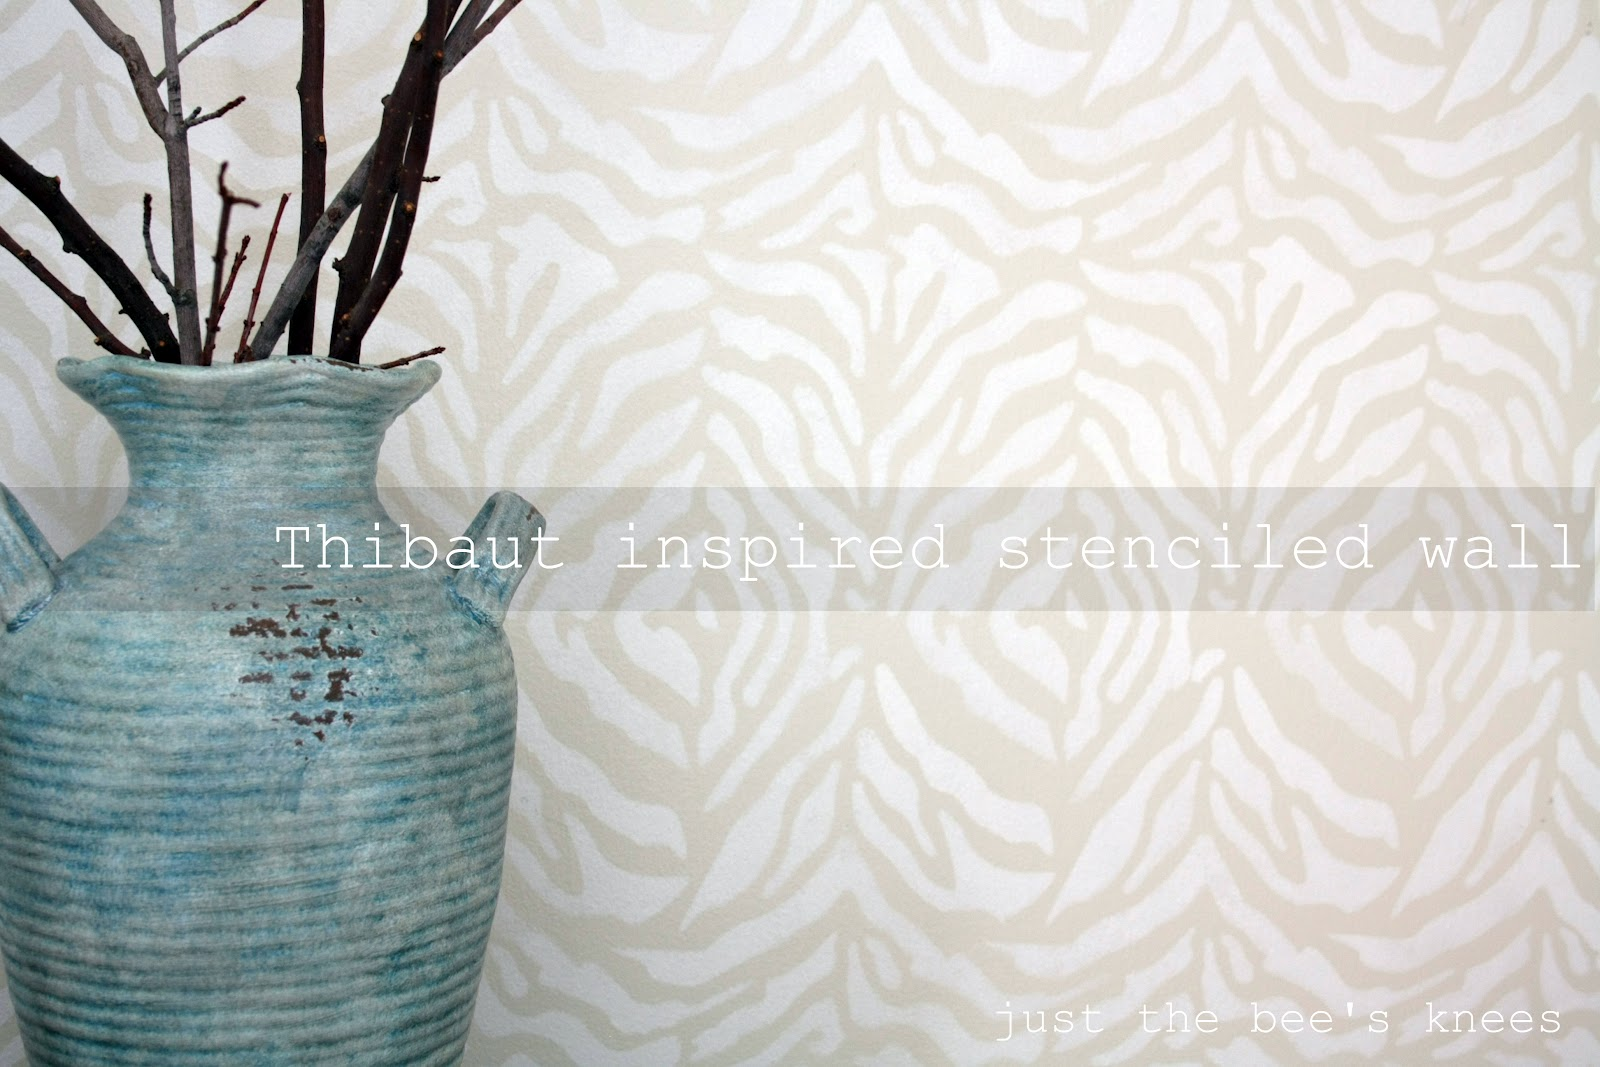 Thibaut inspired stenciled wall